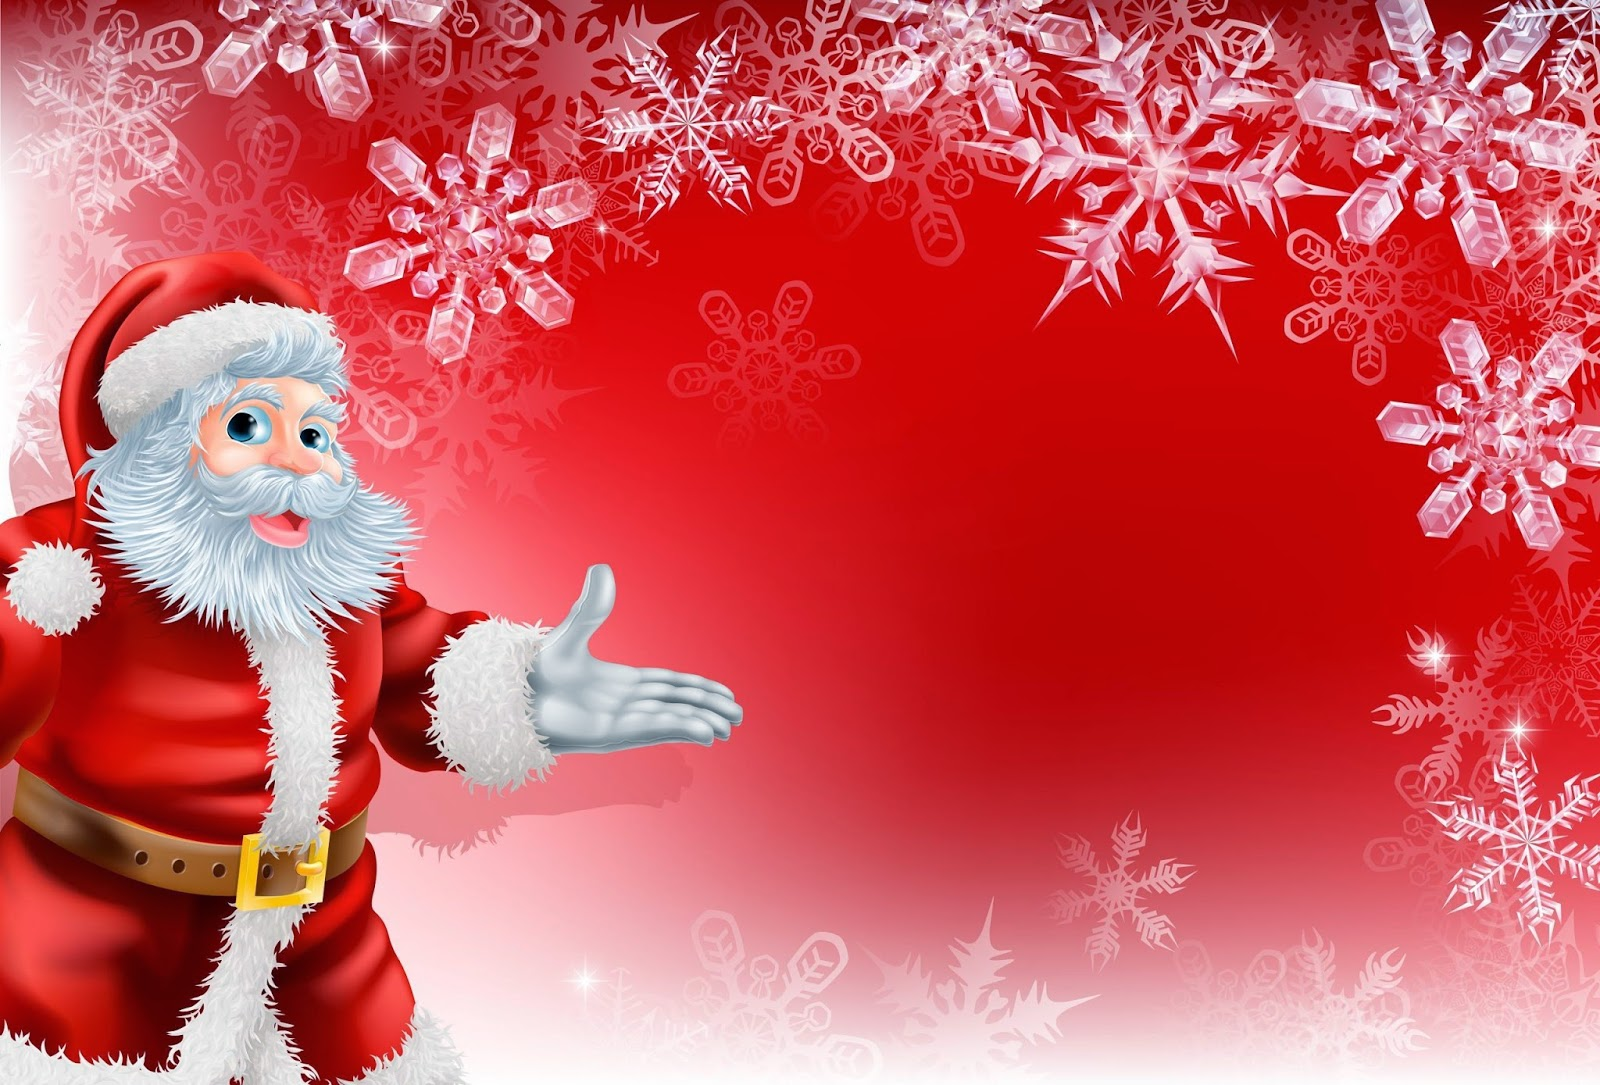 Santa-Claus-cartoon-Full-HD-wallpaper-for-desktop-pc-mac-laptop.jpg